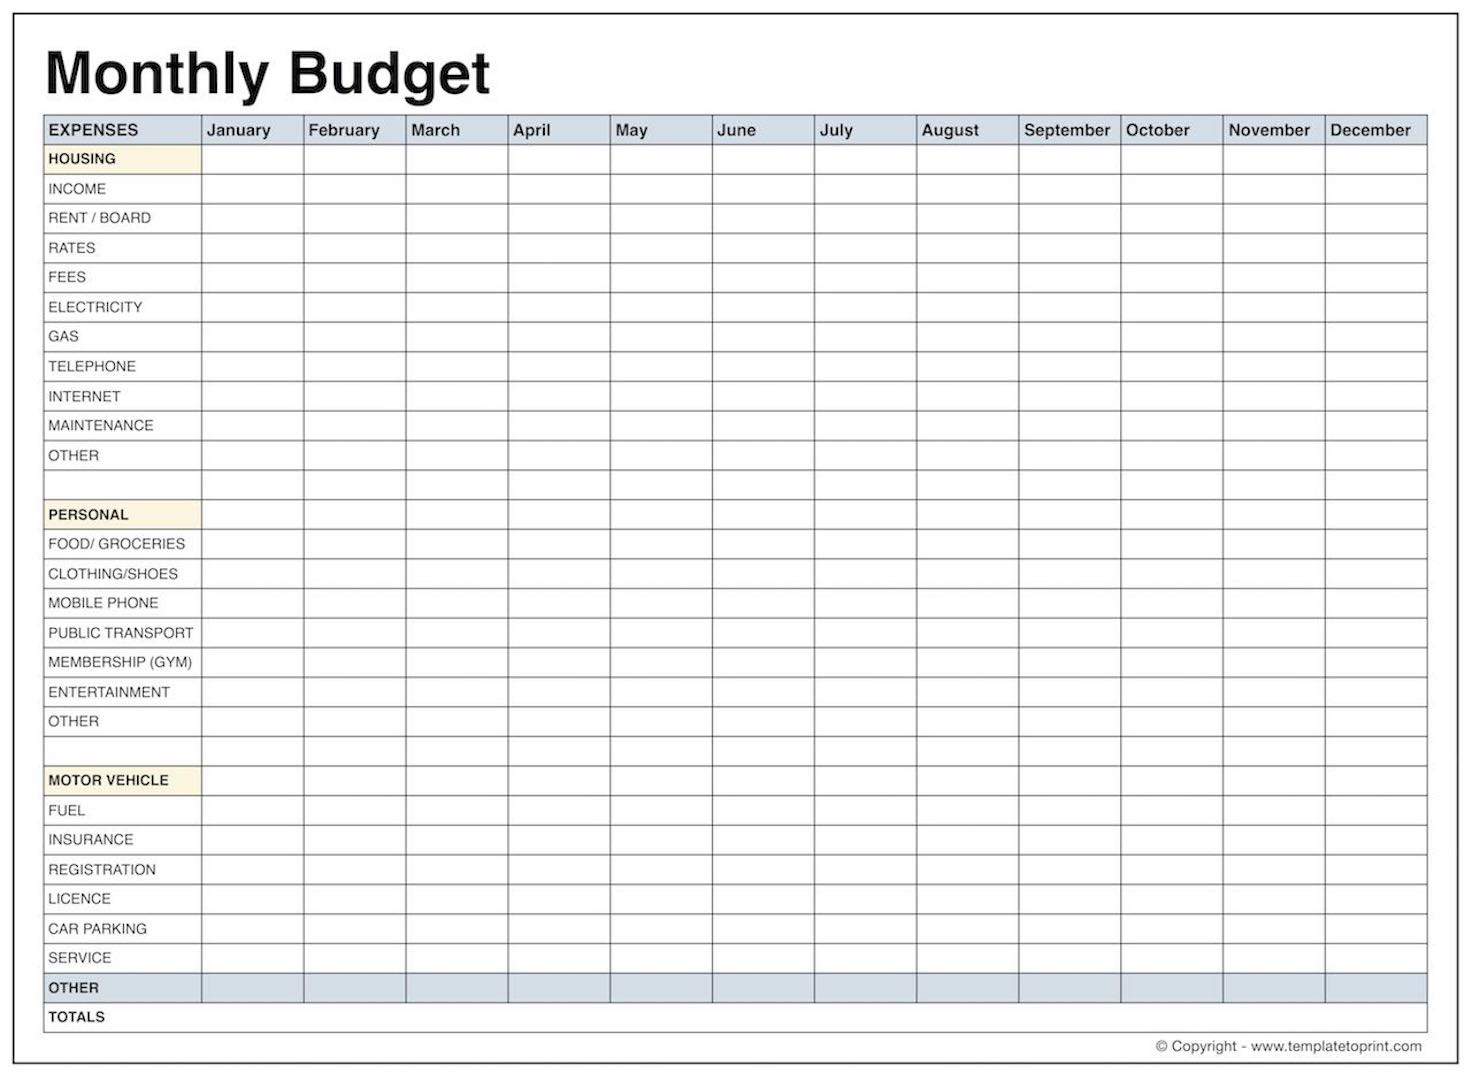 Blank Monthly Budget Template Pdf